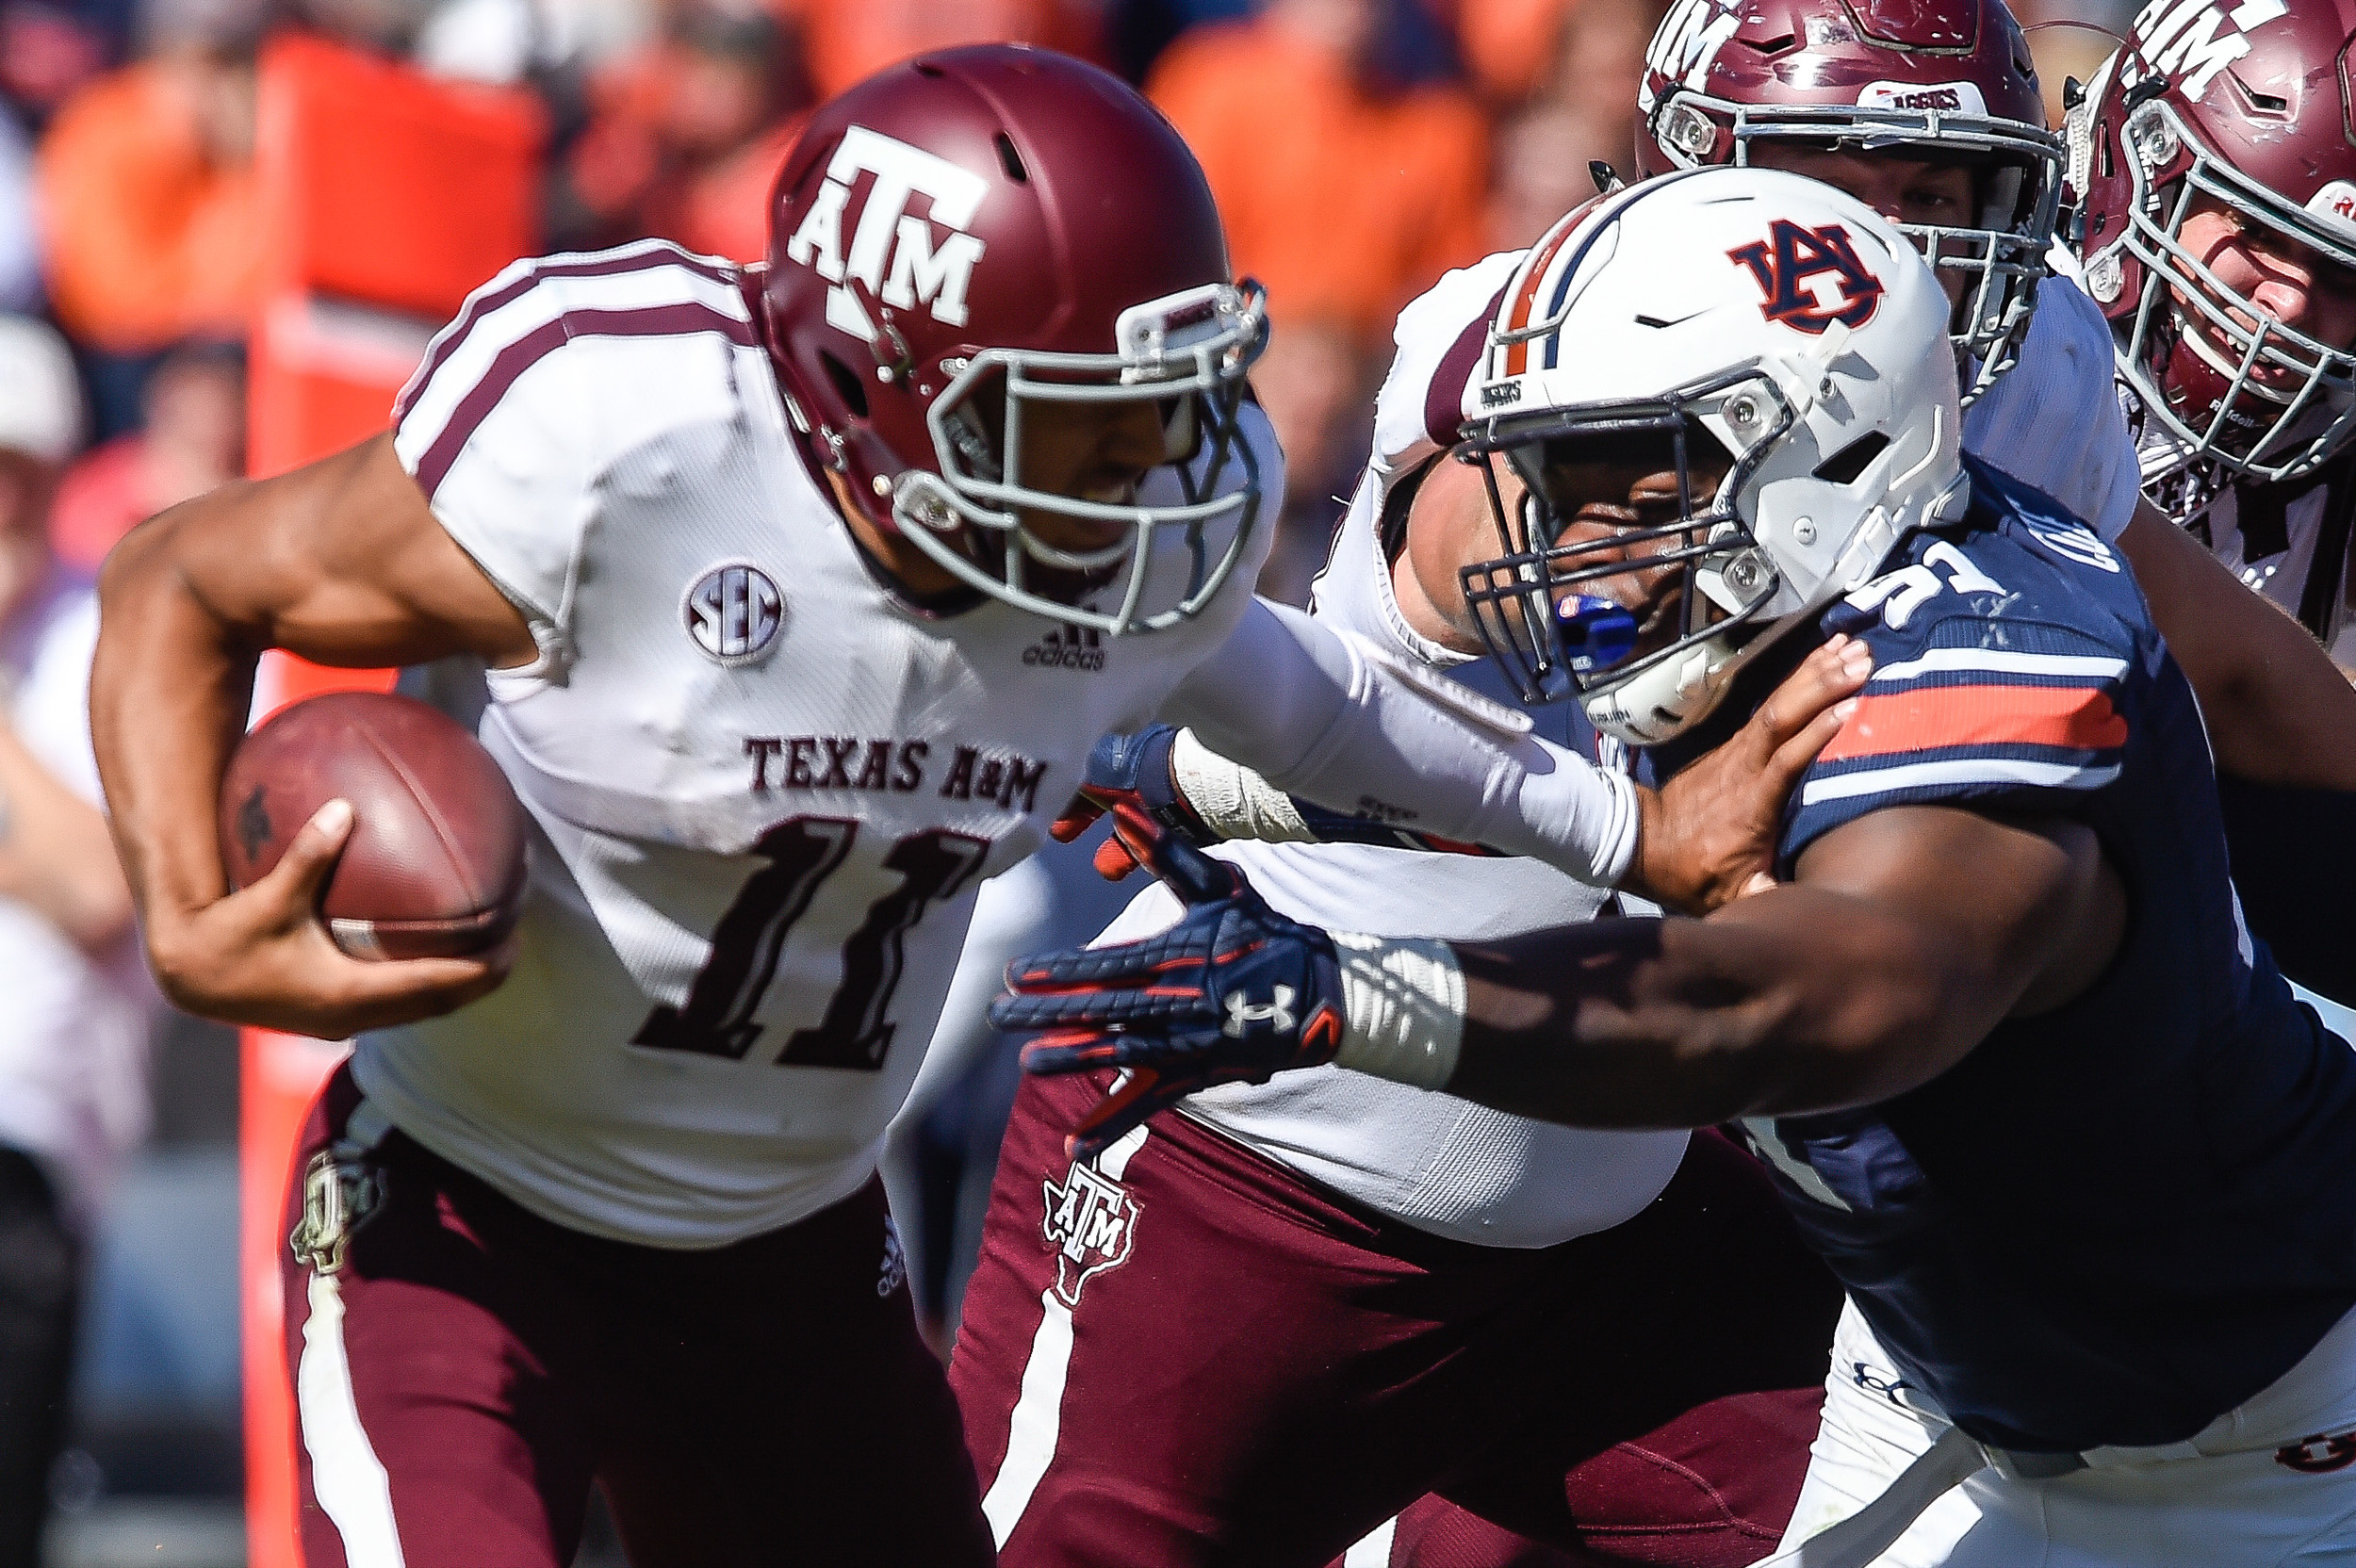 Texas A&M Aggies quarterback Kellen Mond (11) is brought down by Auburn Tigers defensive lineman Nick Coe (91) during the second half of an NCAA football game against the Texas A&M Aggies Saturday, November 3, 2018, at Jordan-Hare Stadium in Auburn, Ala. (Photo by Jeff Johnsey)